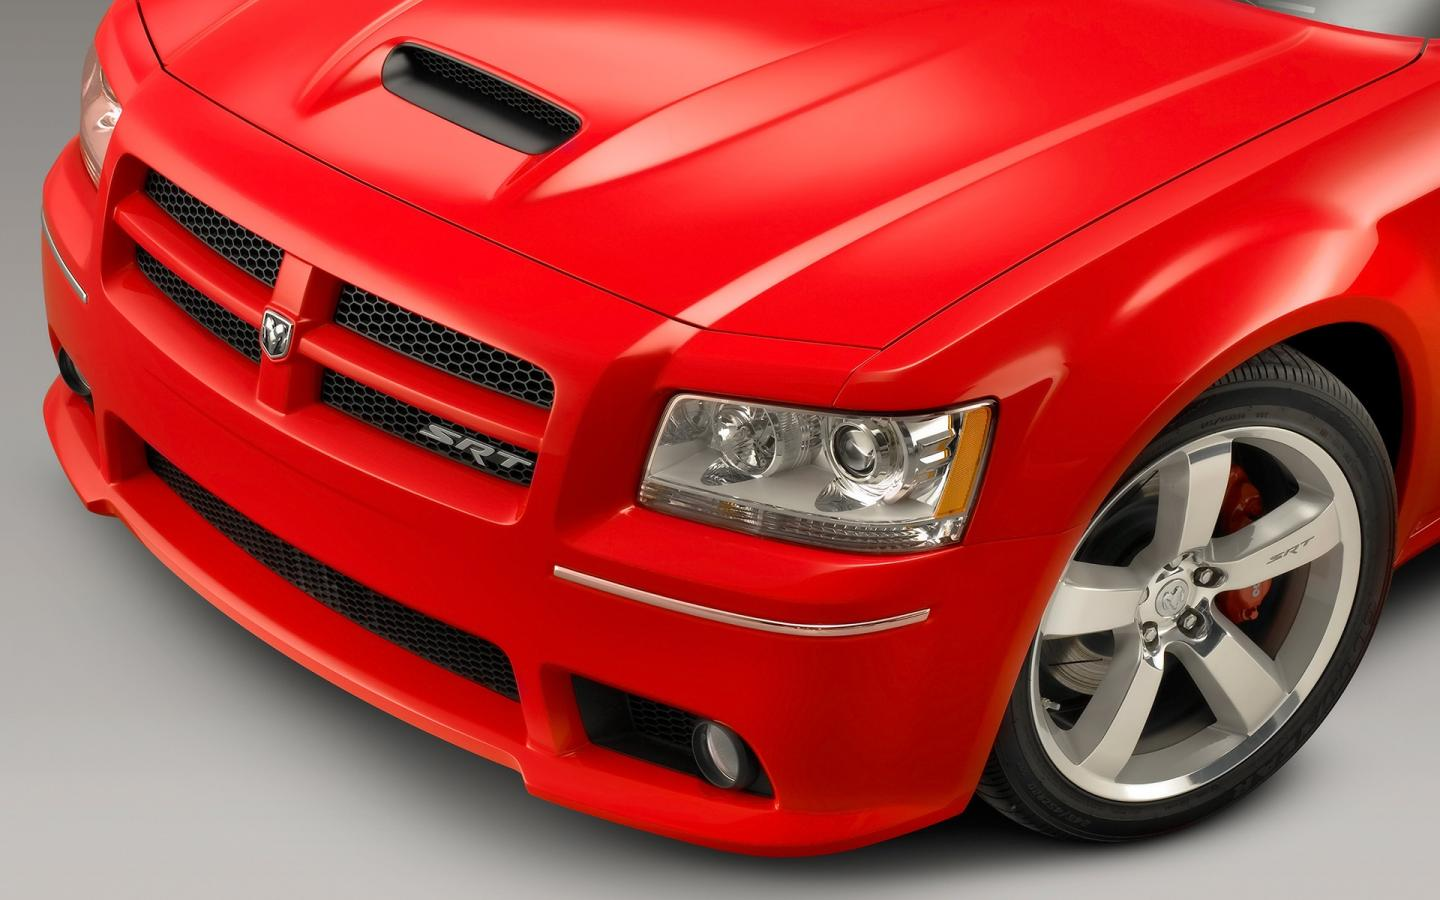 2008 Dodge Magnum Srt8 Front Section 1440x900